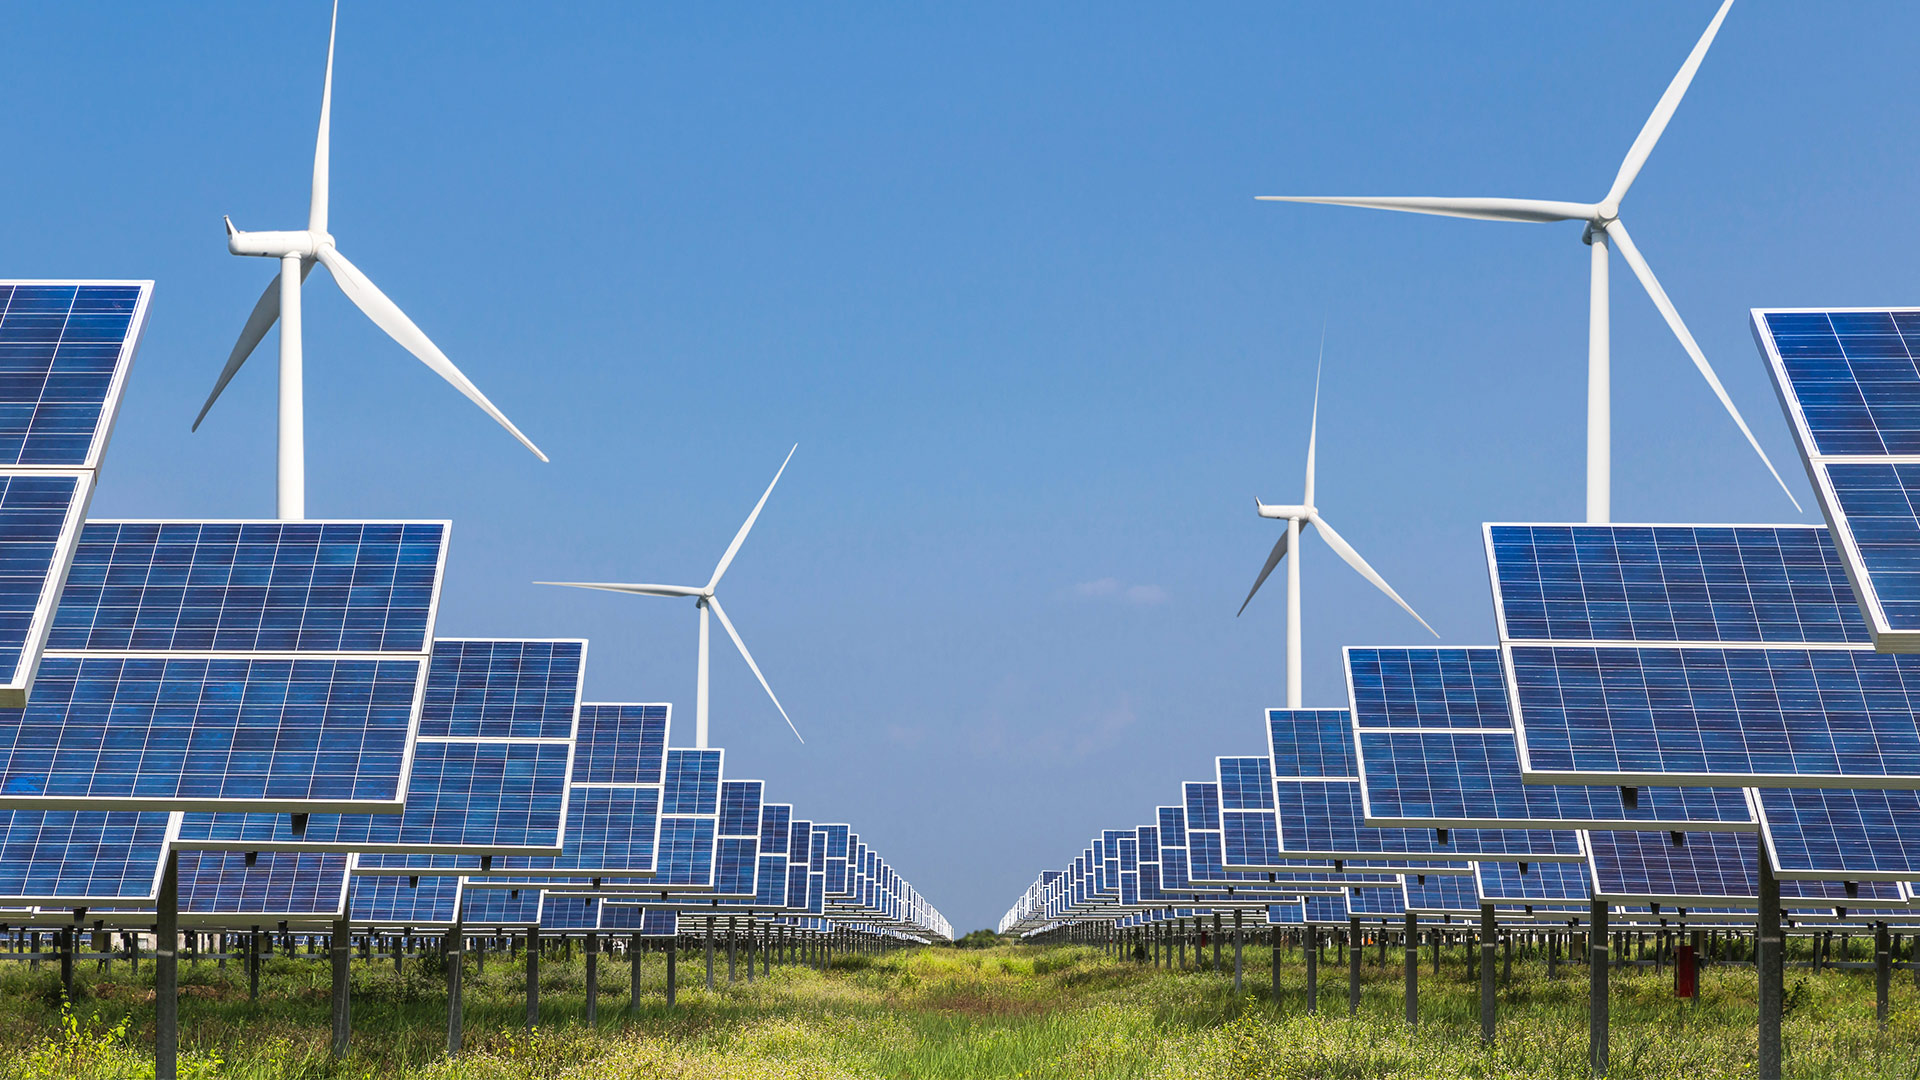 Solar panel and wind farm